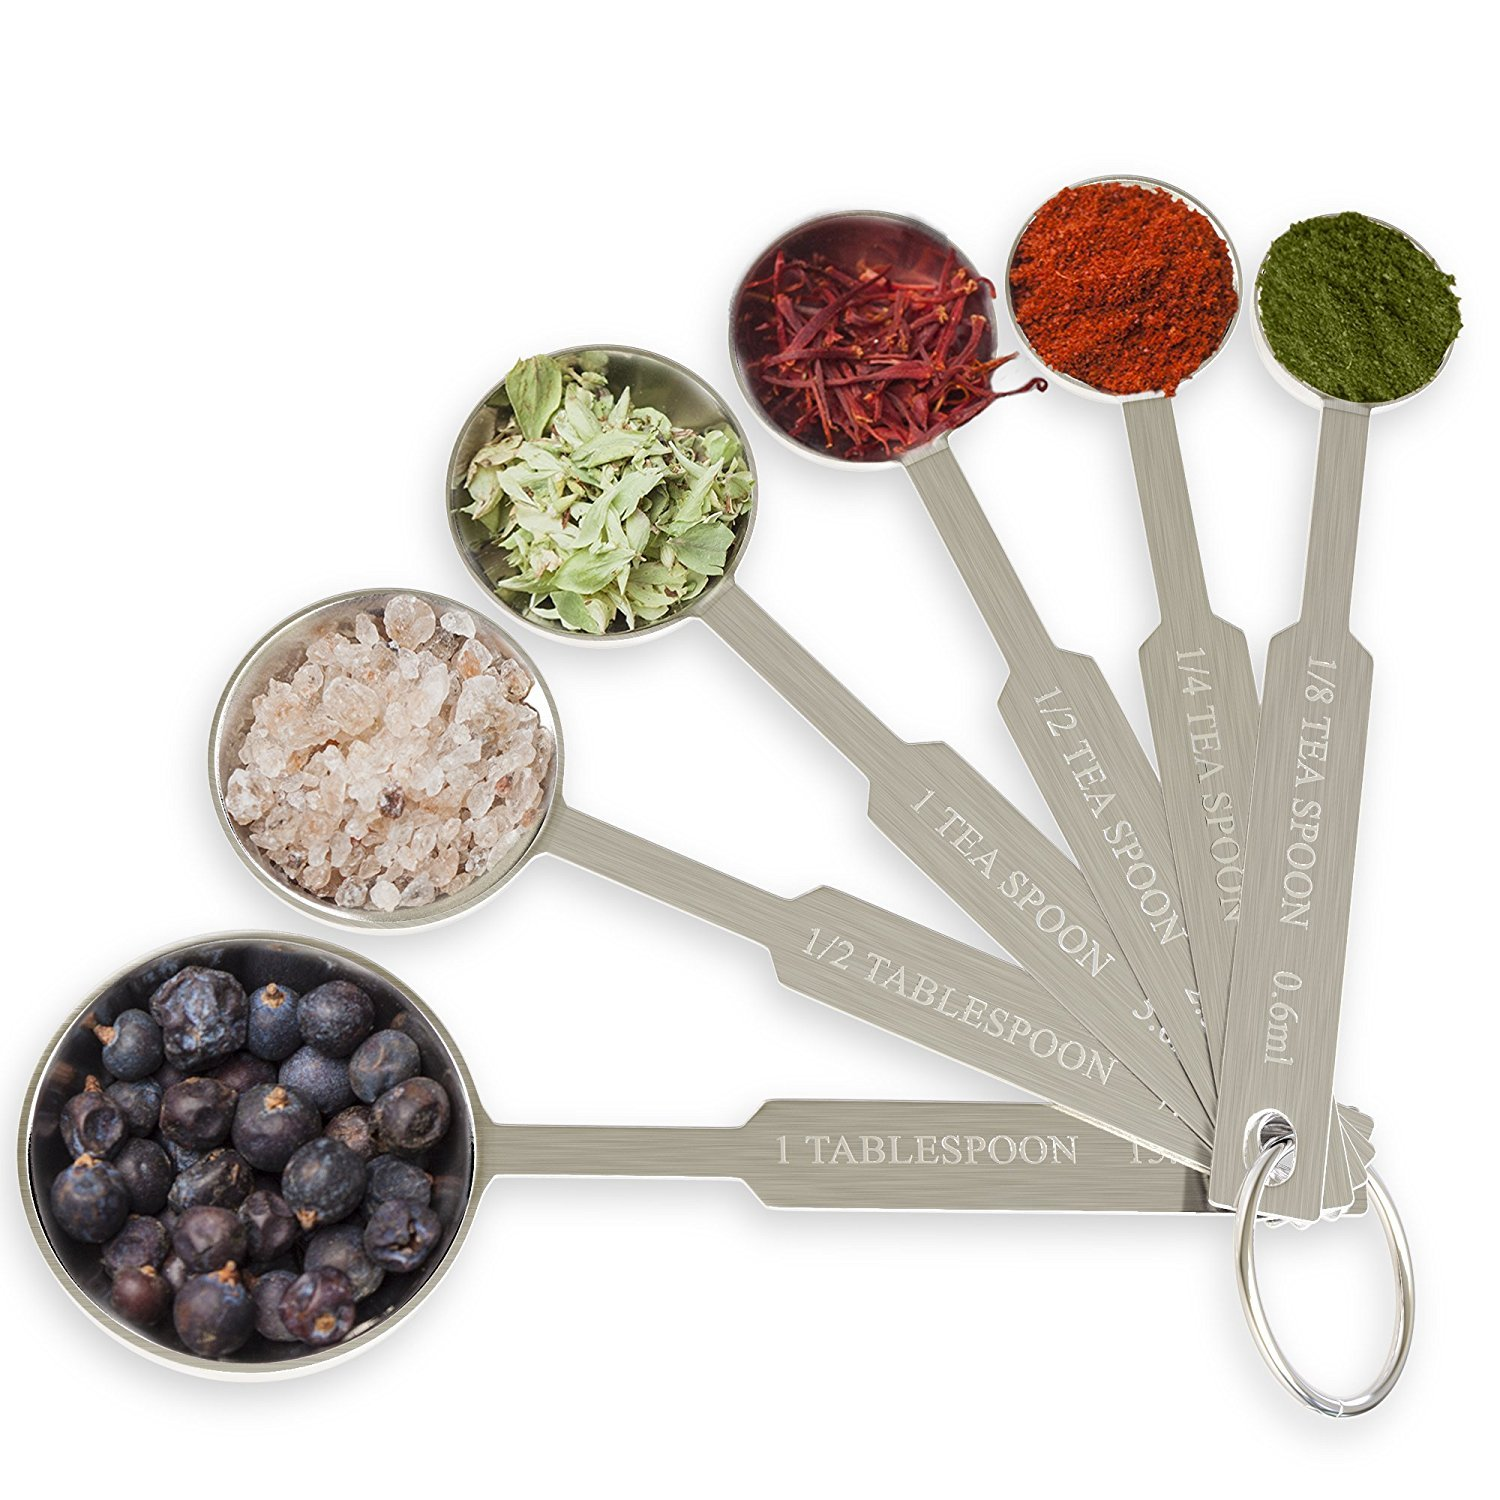 [2-Pack] Royal Measuring Spoons Set - Stainless Steel Baking Spoon for Dry and Liquid Ingredients - Detachable Ring Holder - 6 Measurements by Royal